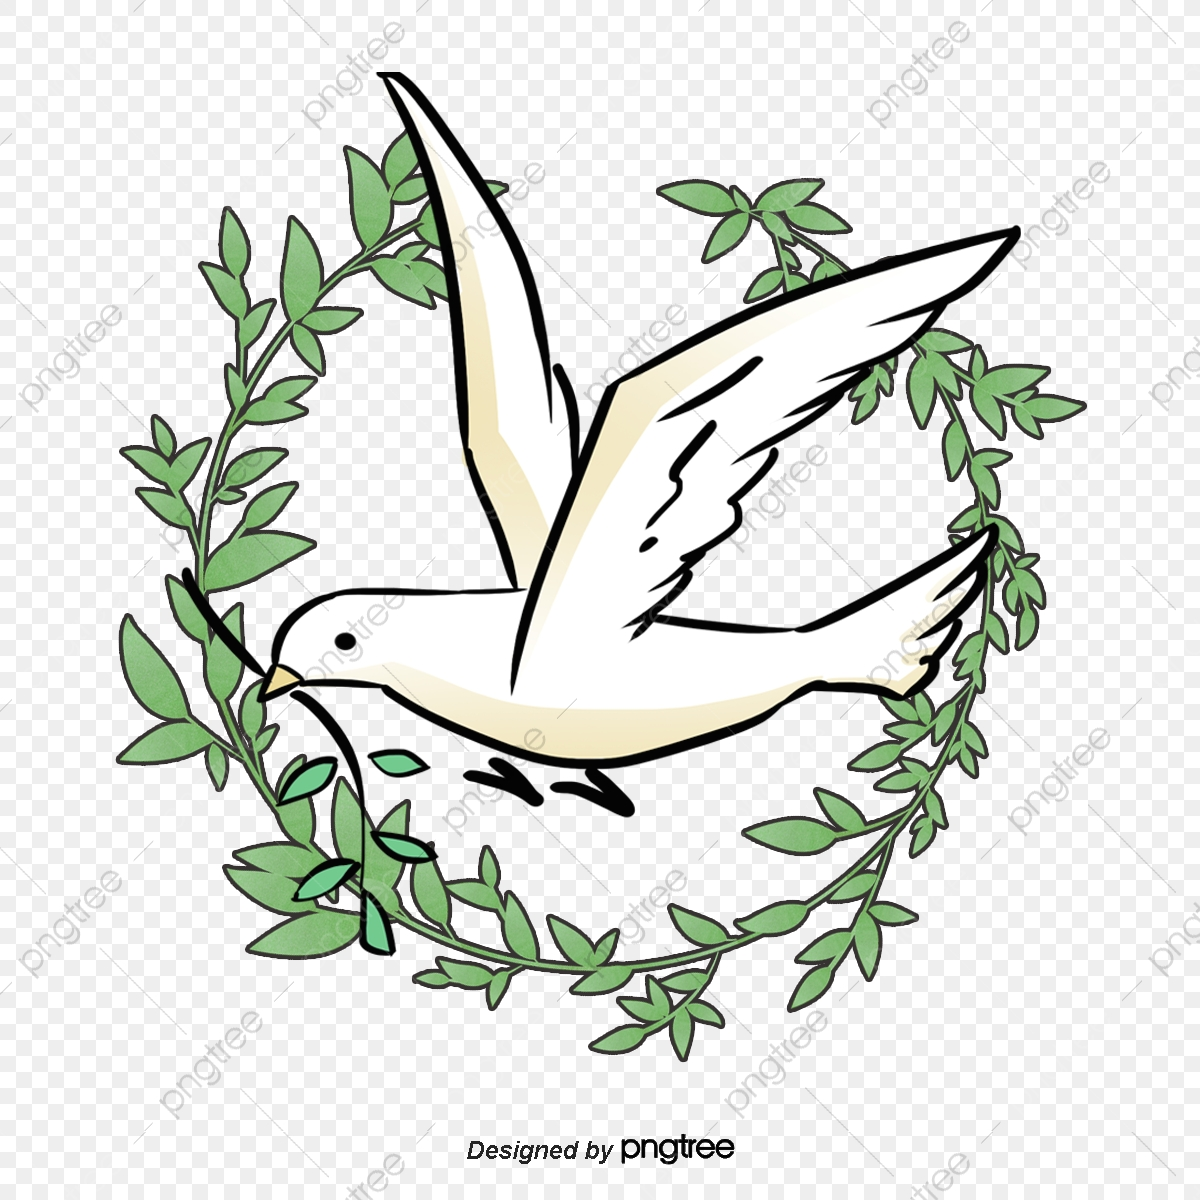 Peace Dove Pigeon Olive Branch Olive Png Transparent Clipart Image And Psd File For Free Download All our images are transparent and. https pngtree com freepng peace dove 619119 html